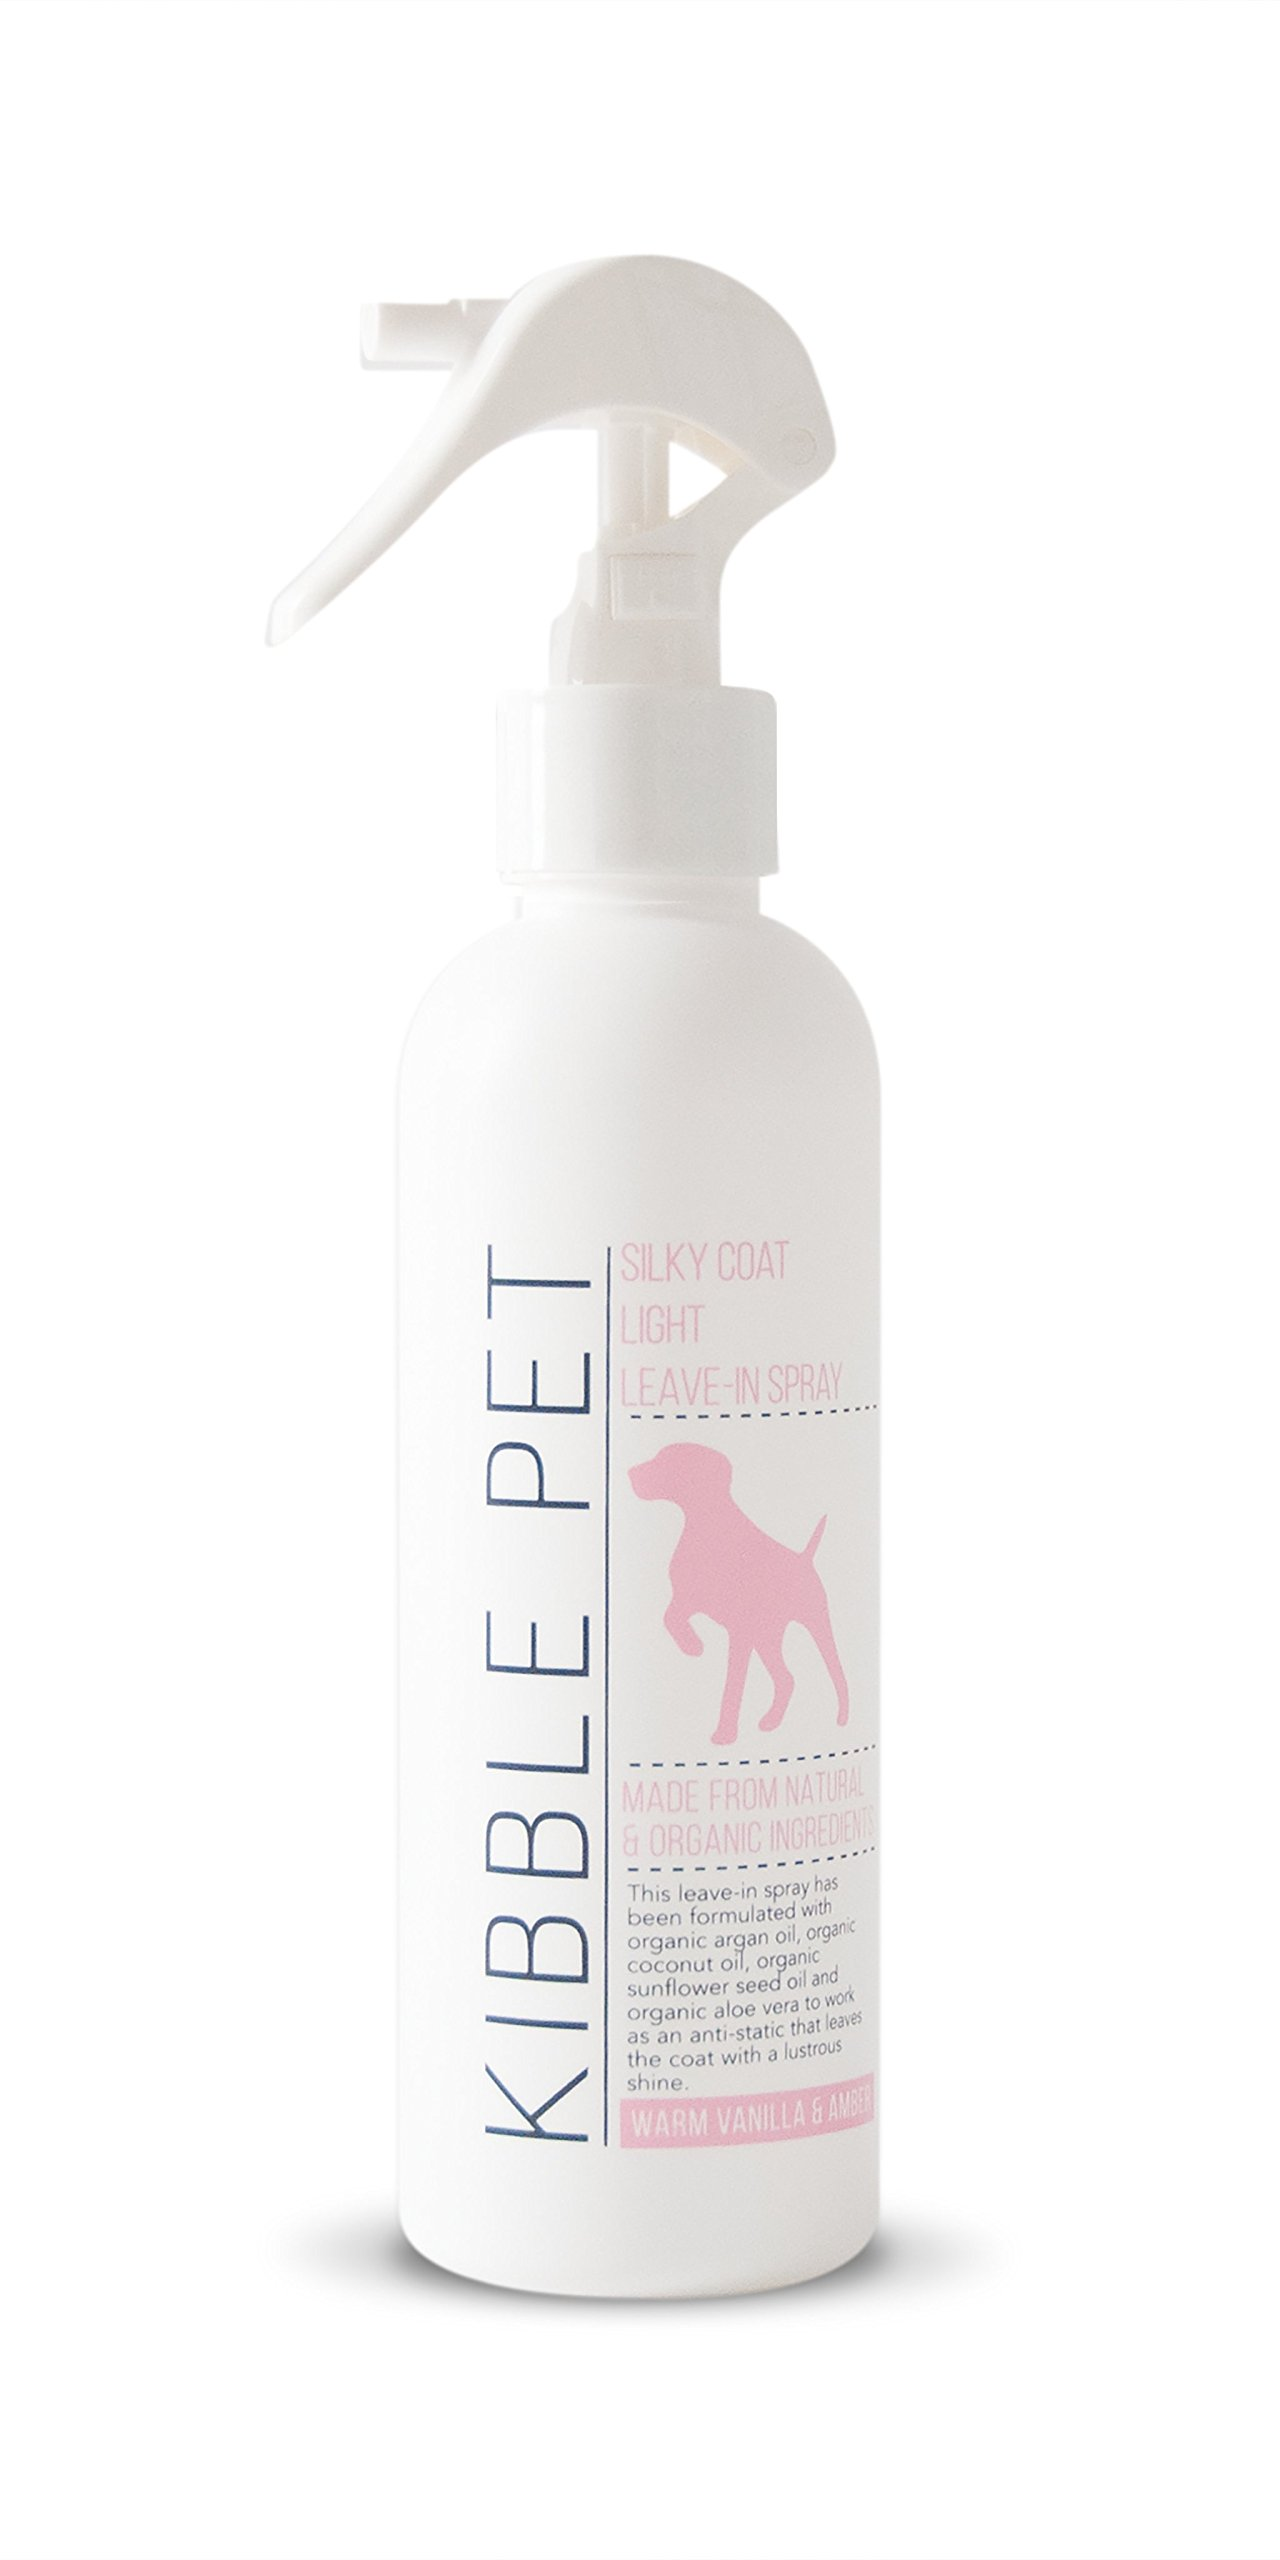 Kibble Pet Silky Coat Light Leave in Spray, Warm Vanilla and Amber (7.2 Ounces)